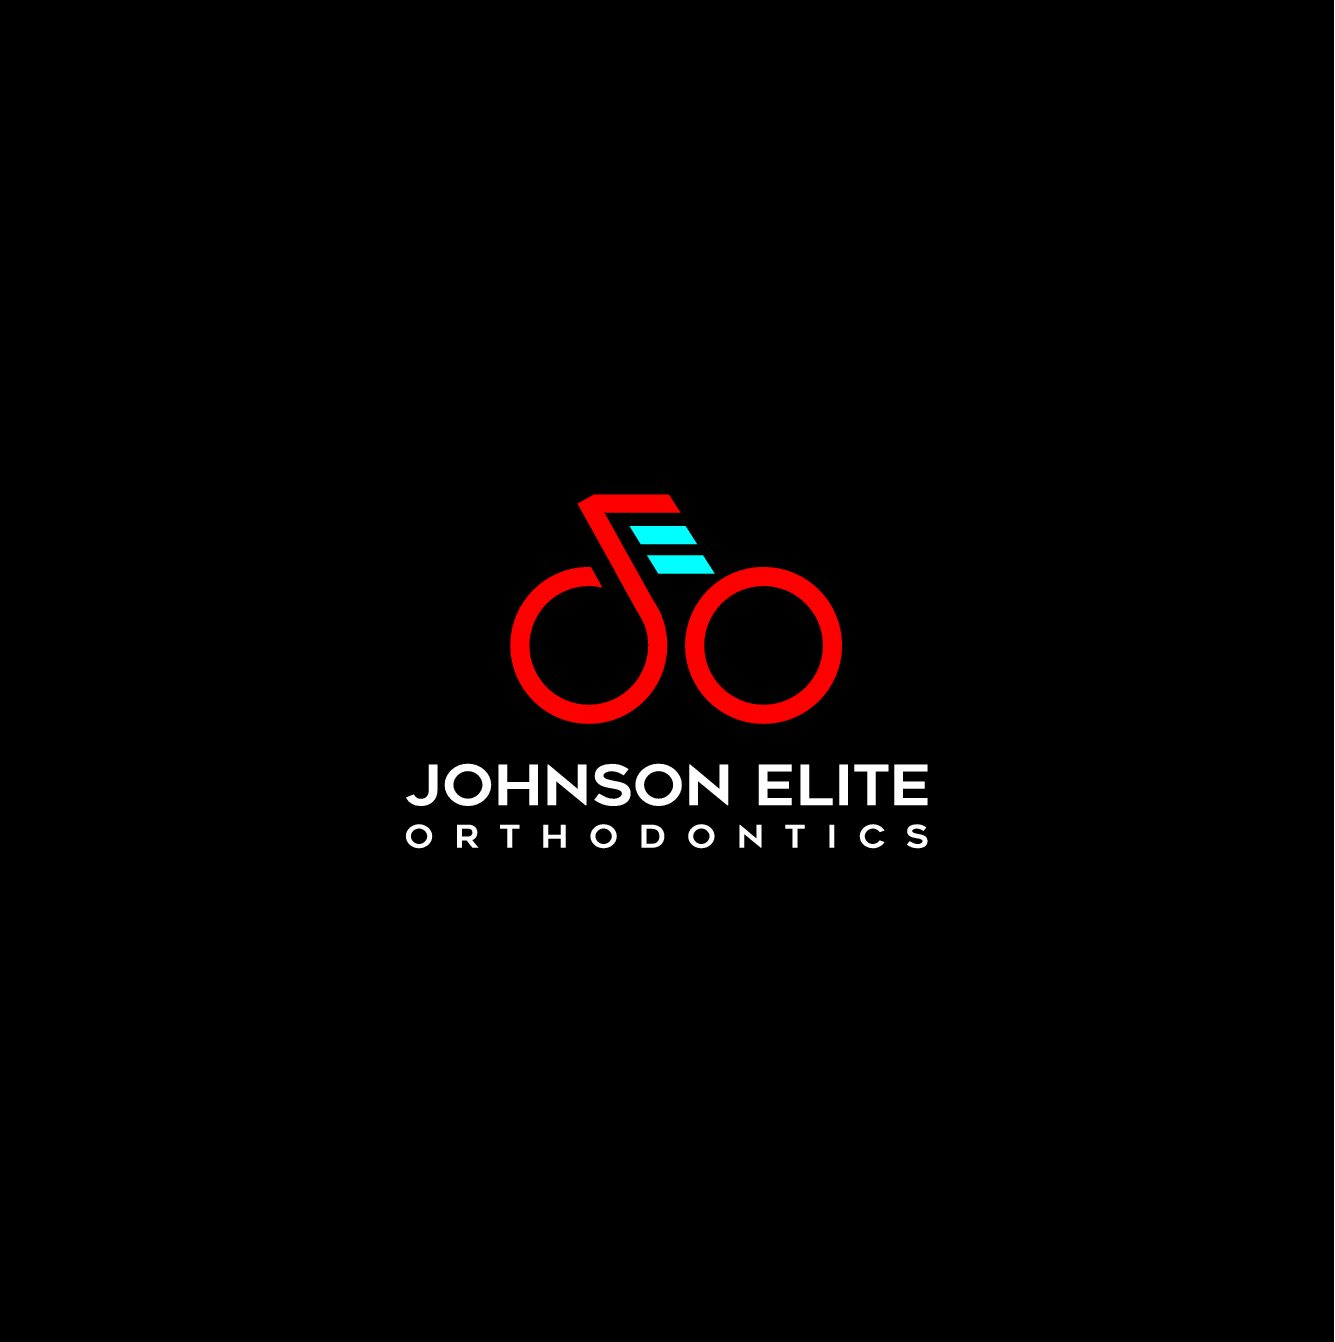 Johnson Elite Ortho